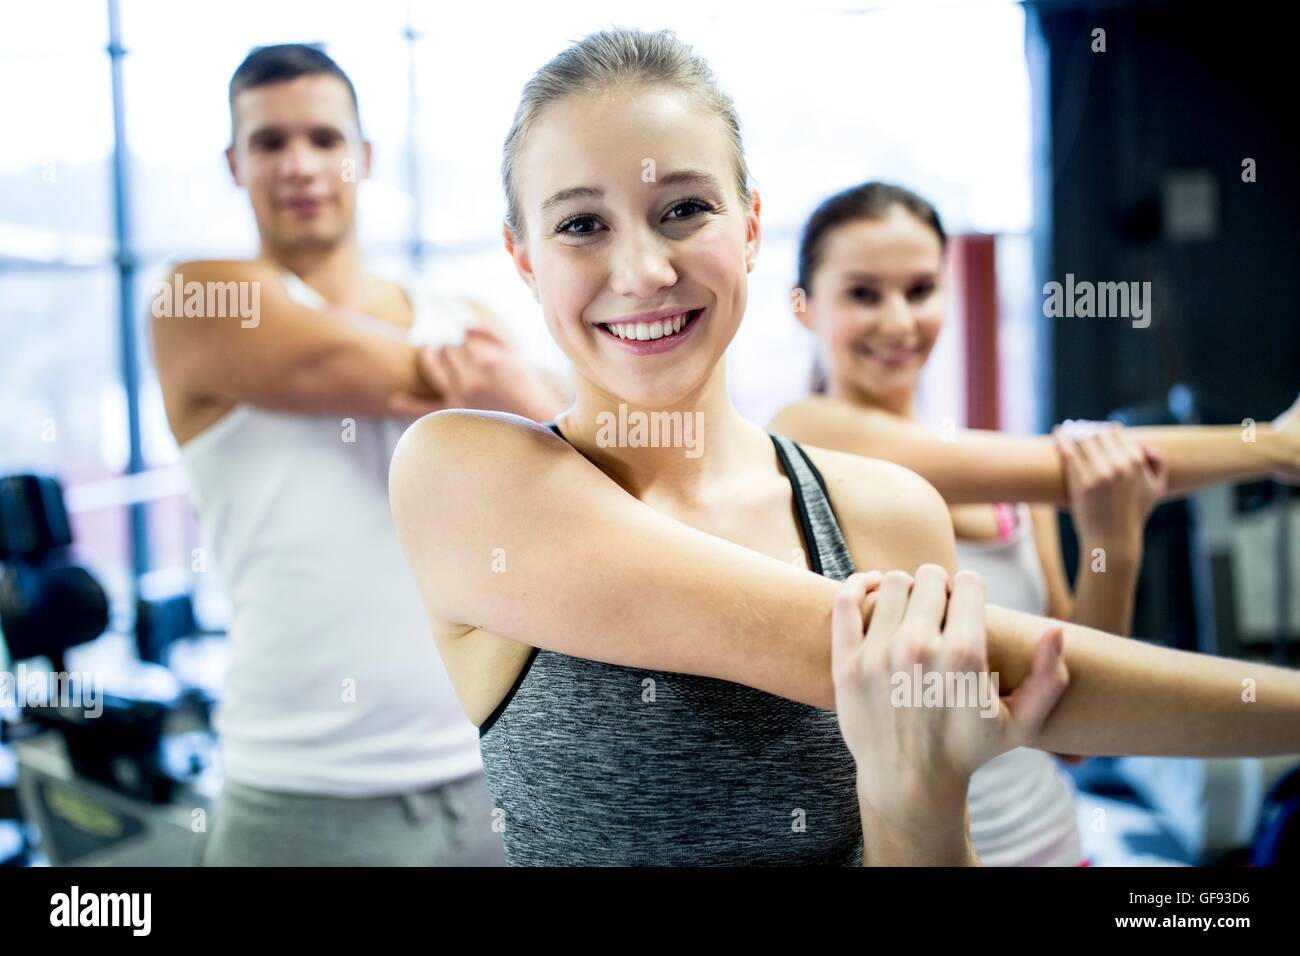 PROPERTY RELEASED. MODEL RELEASED. Young man and women doing warm up exercise in gym. - Stock Image